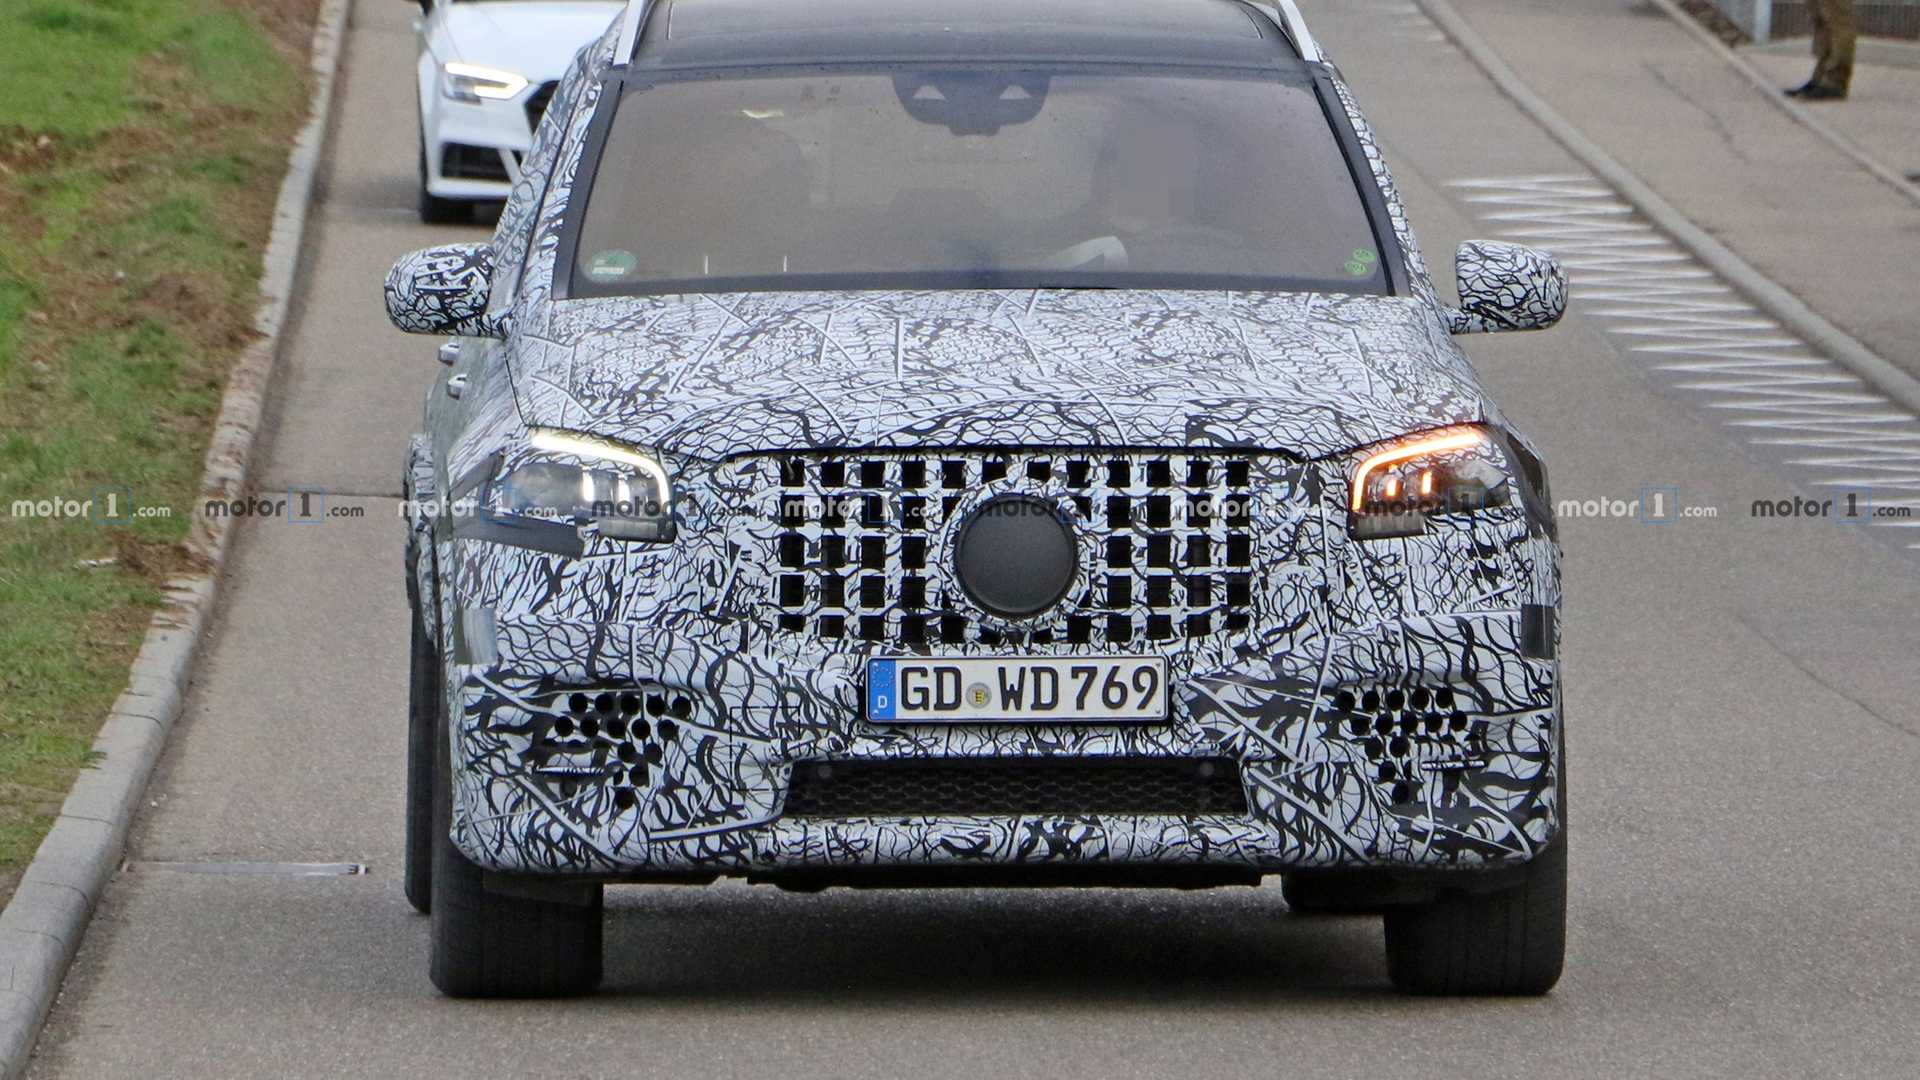 2018 - [Mercedes] GLS II - Page 5 2020-mercedes-amg-gls-63-spy-photo